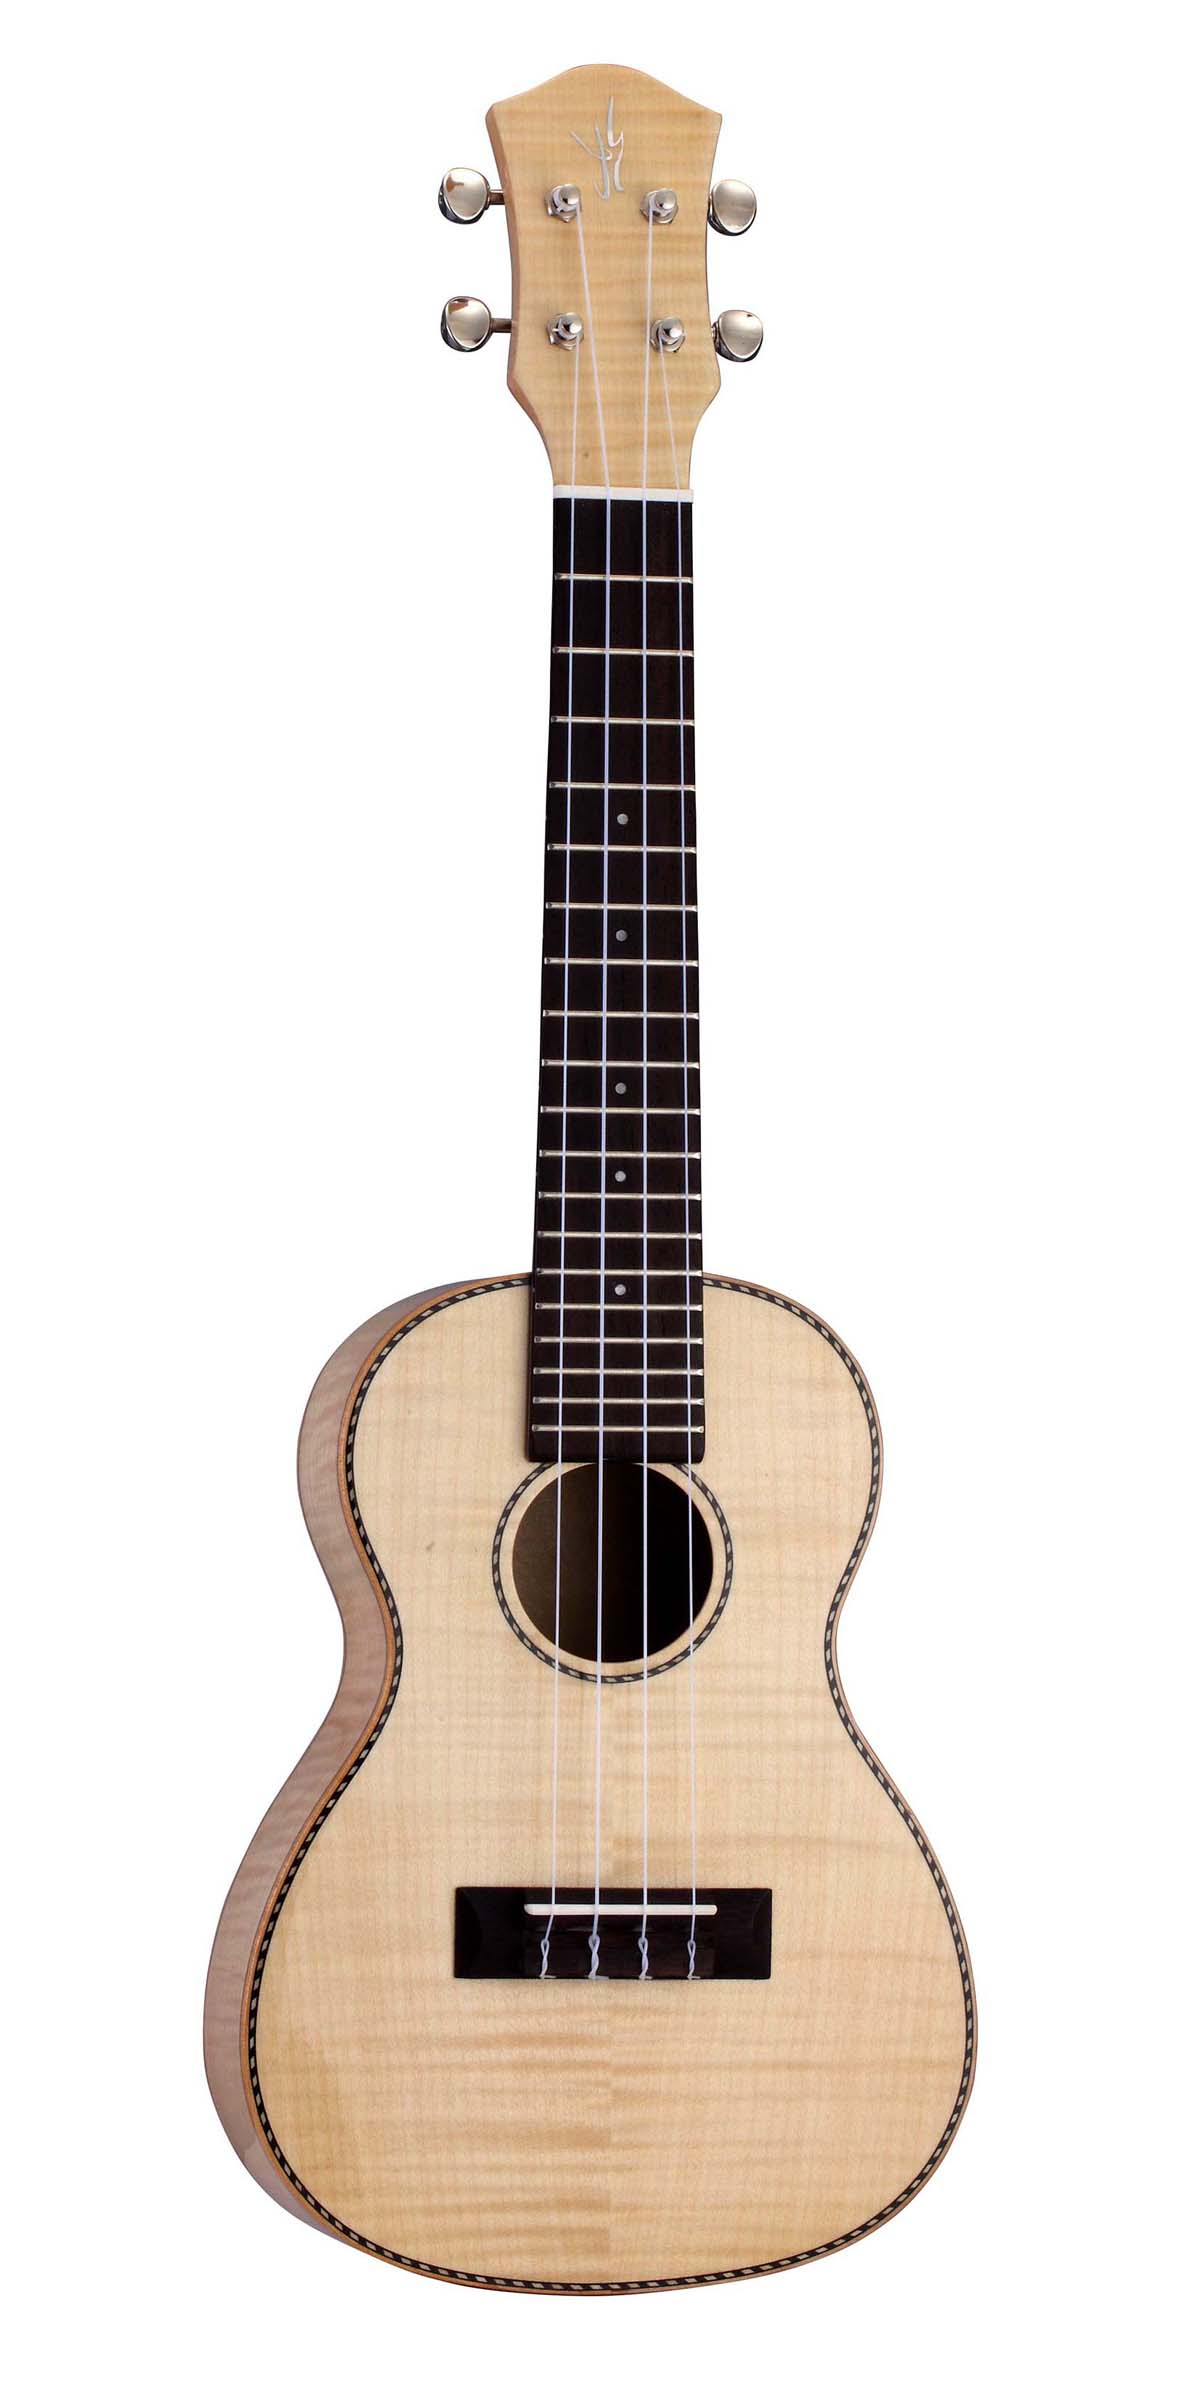 Flame Maple Plywood,Concert Ukulele